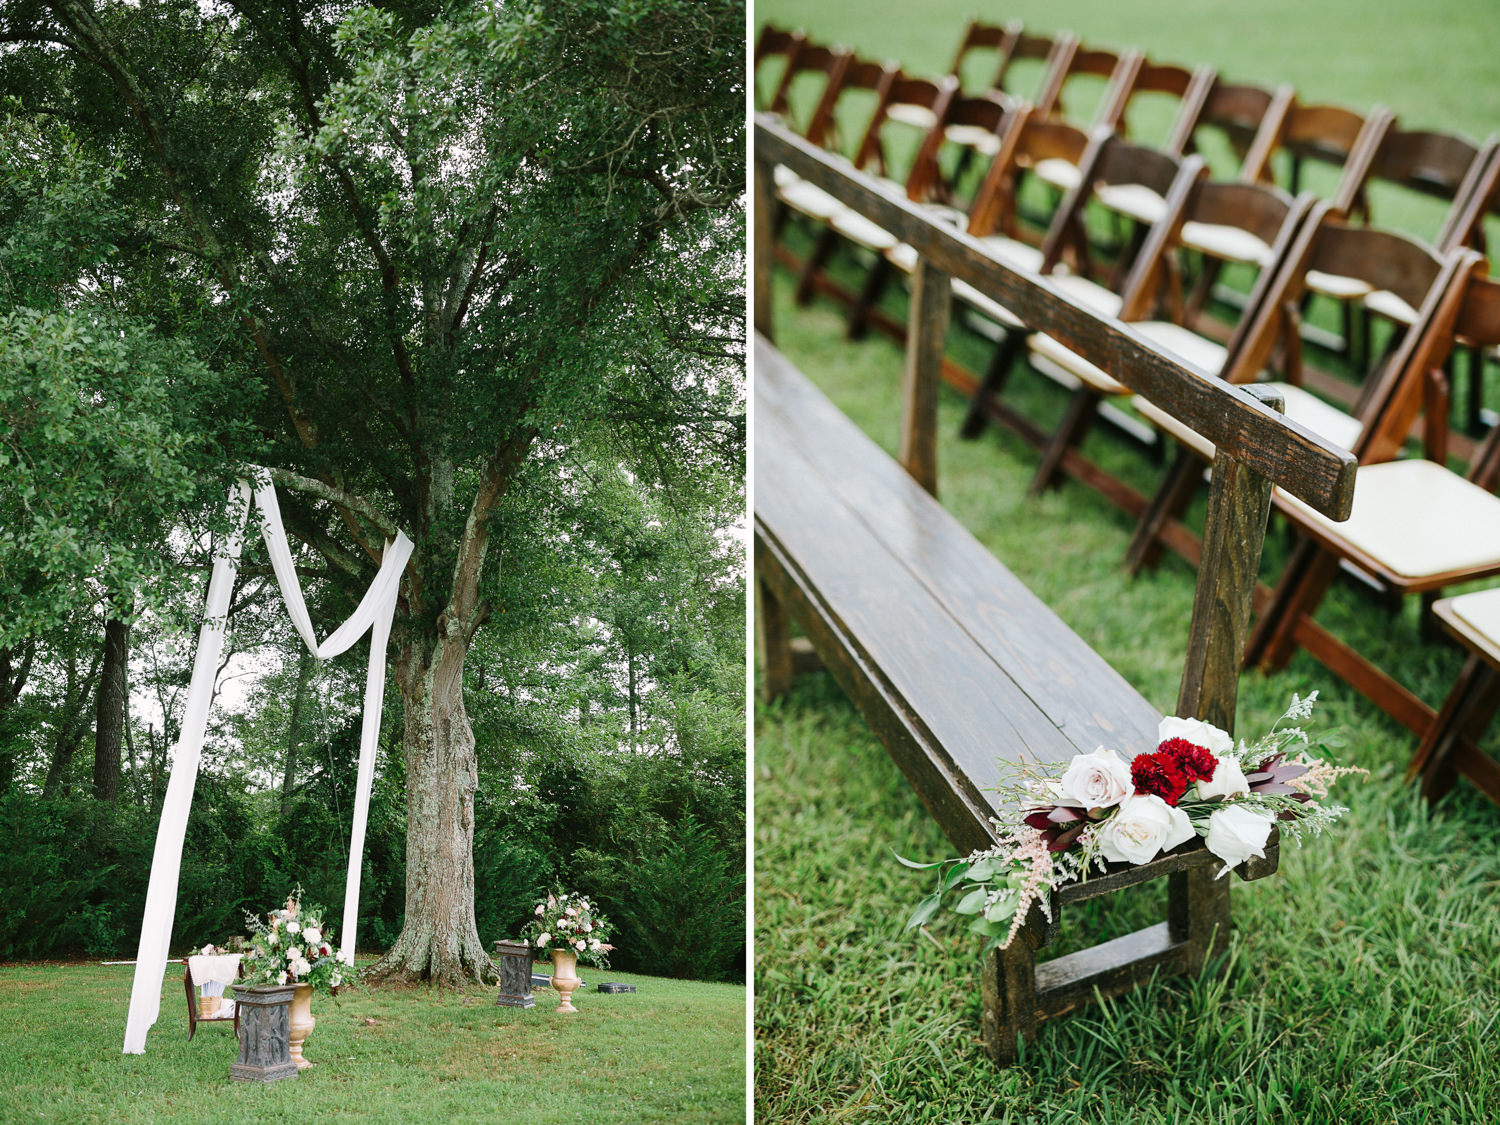 sweetmeadowfarmwedding-2050.jpg